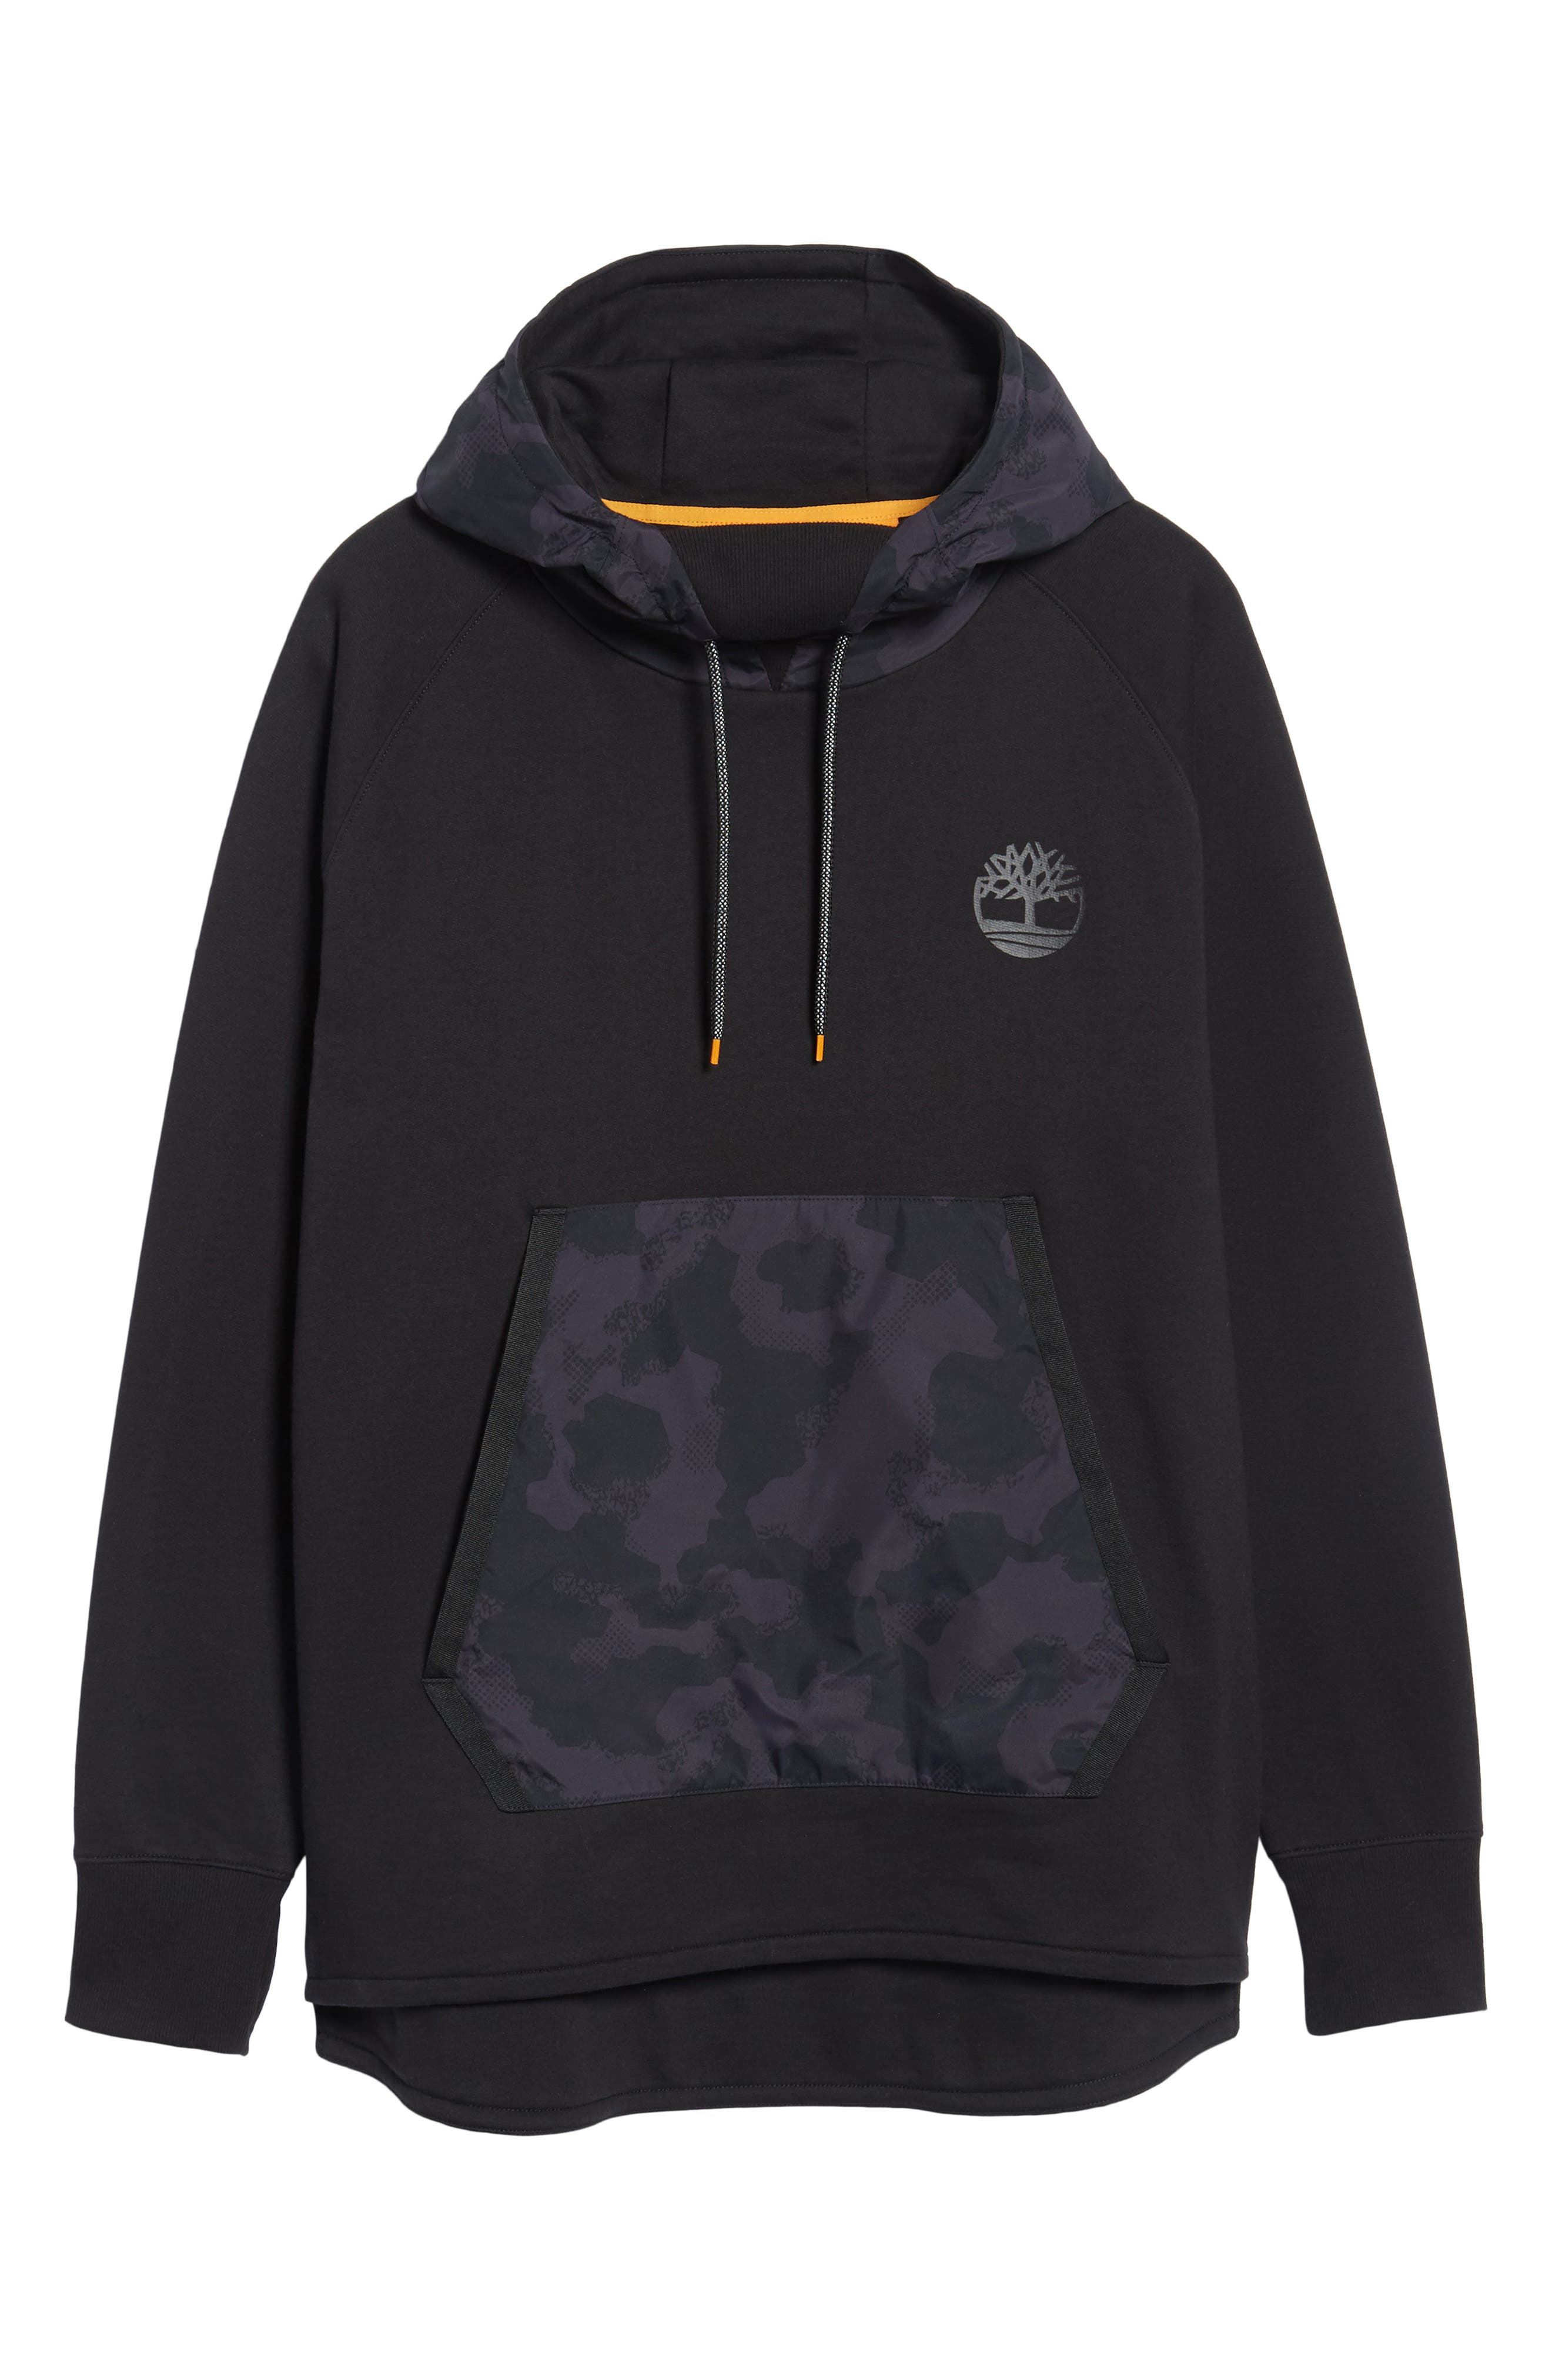 Mixed Media Oversize Hoodie,                             Alternate thumbnail 6, color,                             001